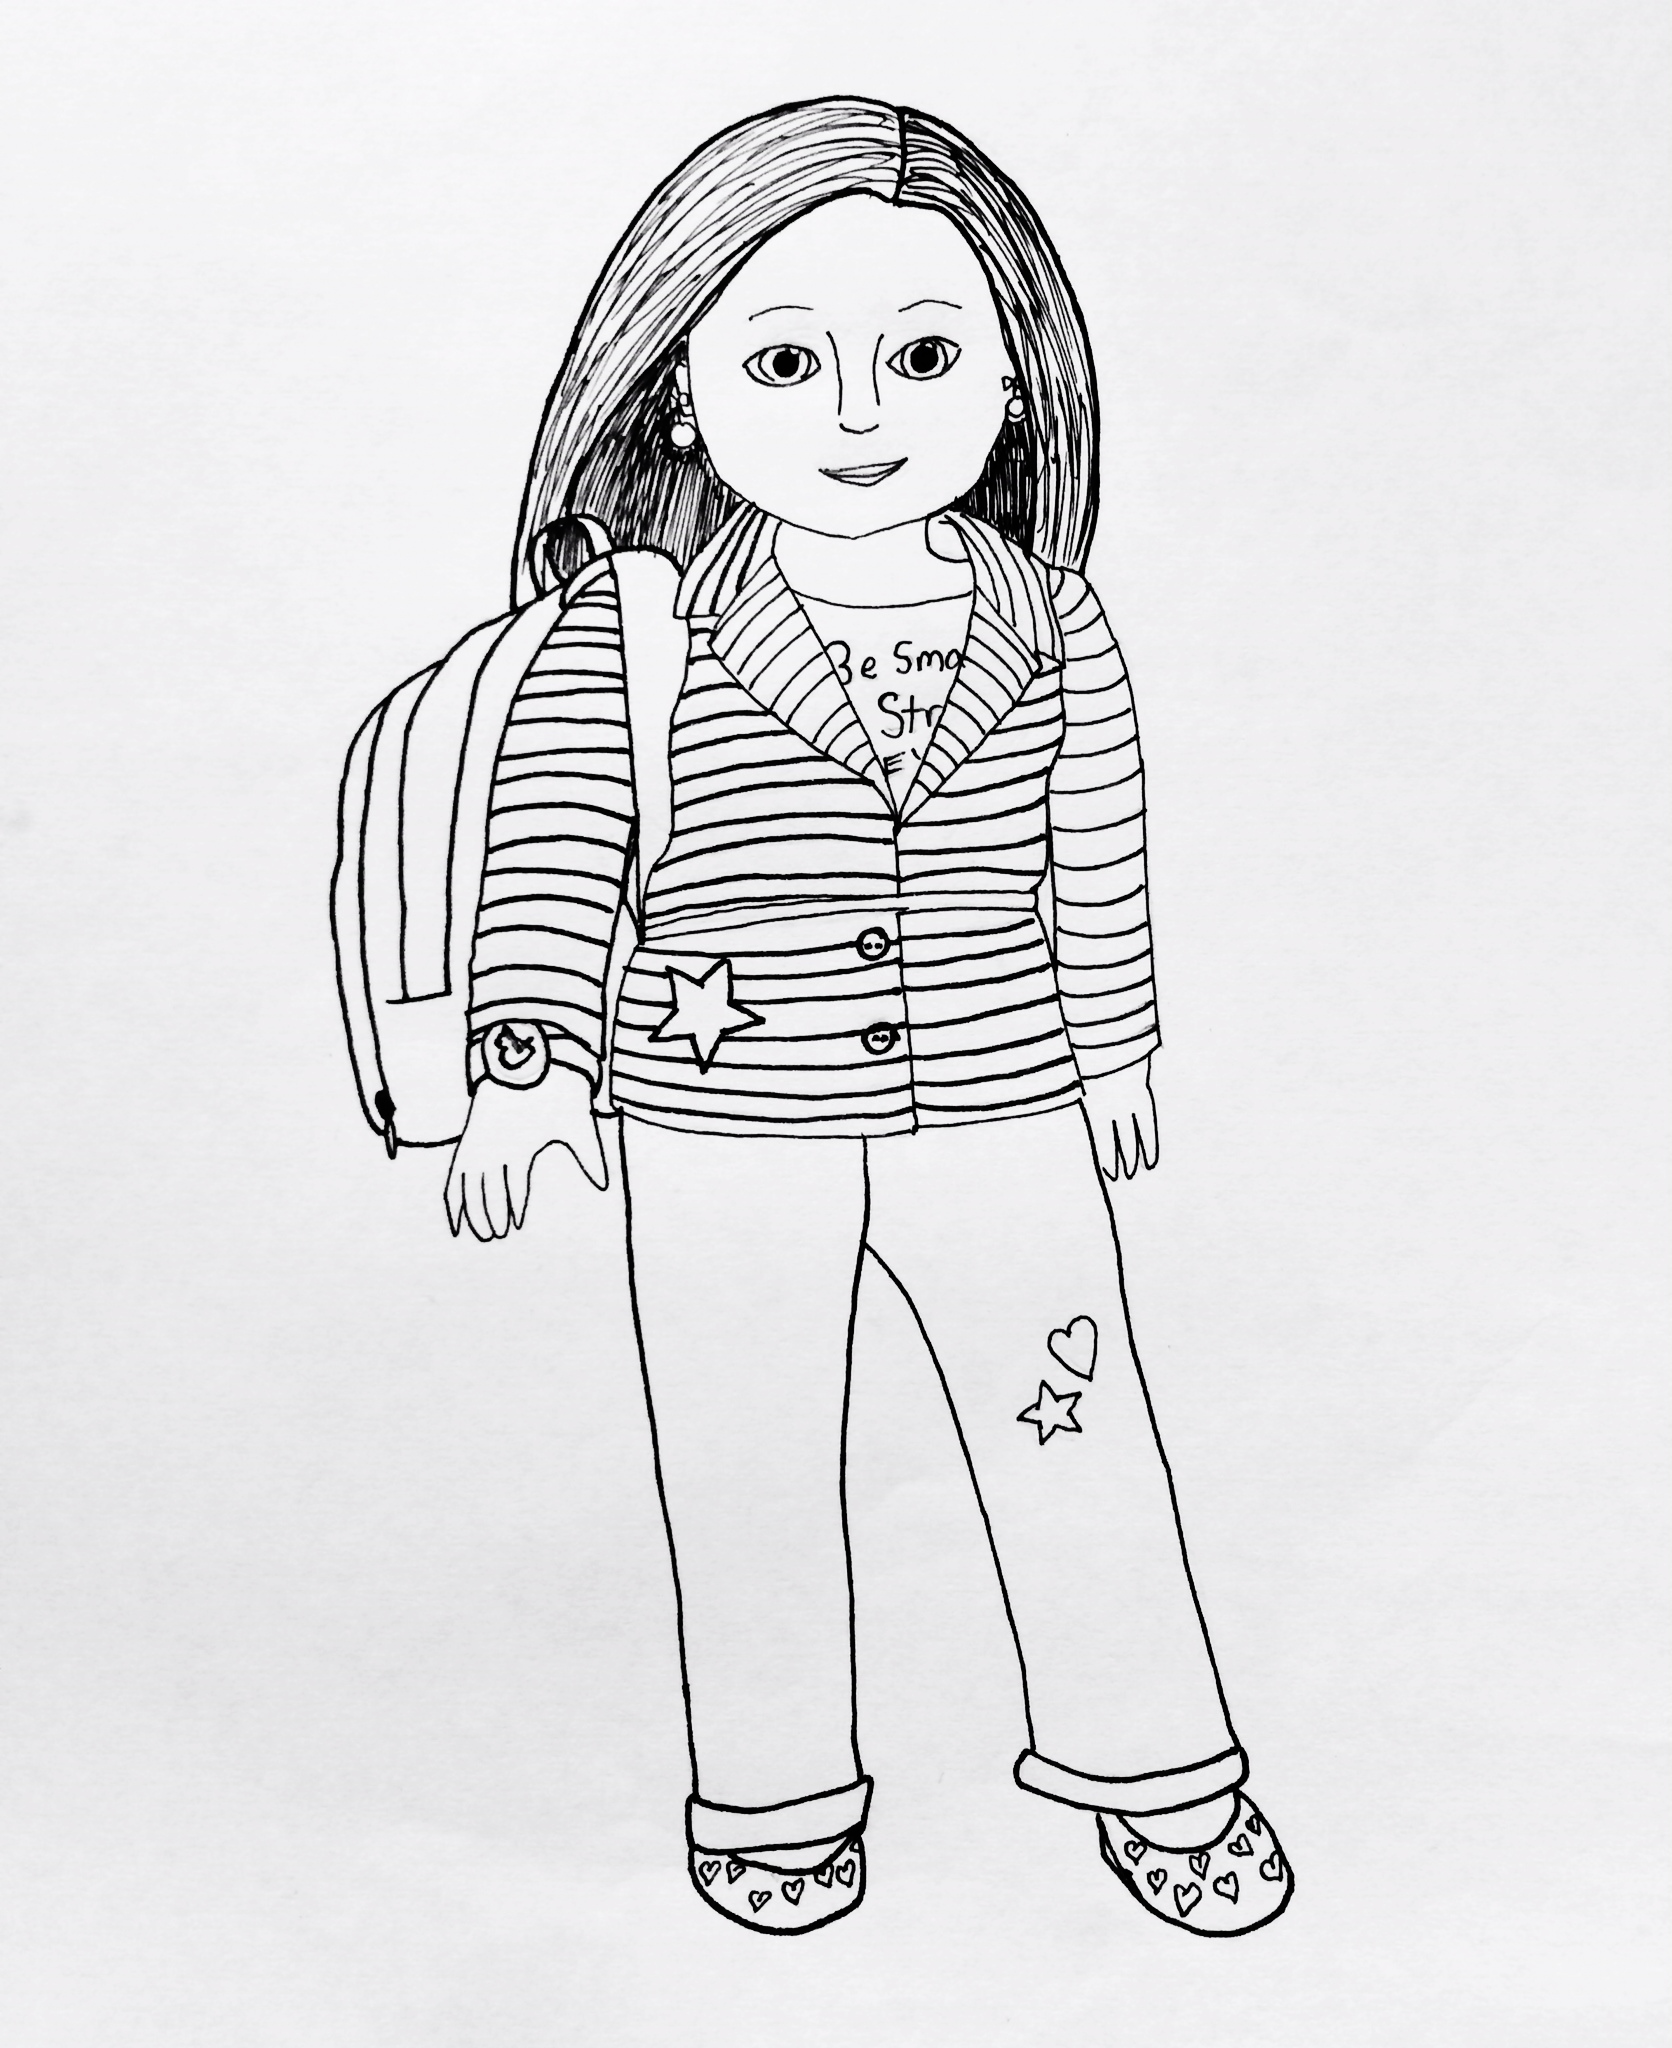 American girl doll coloring pages to download and print for free